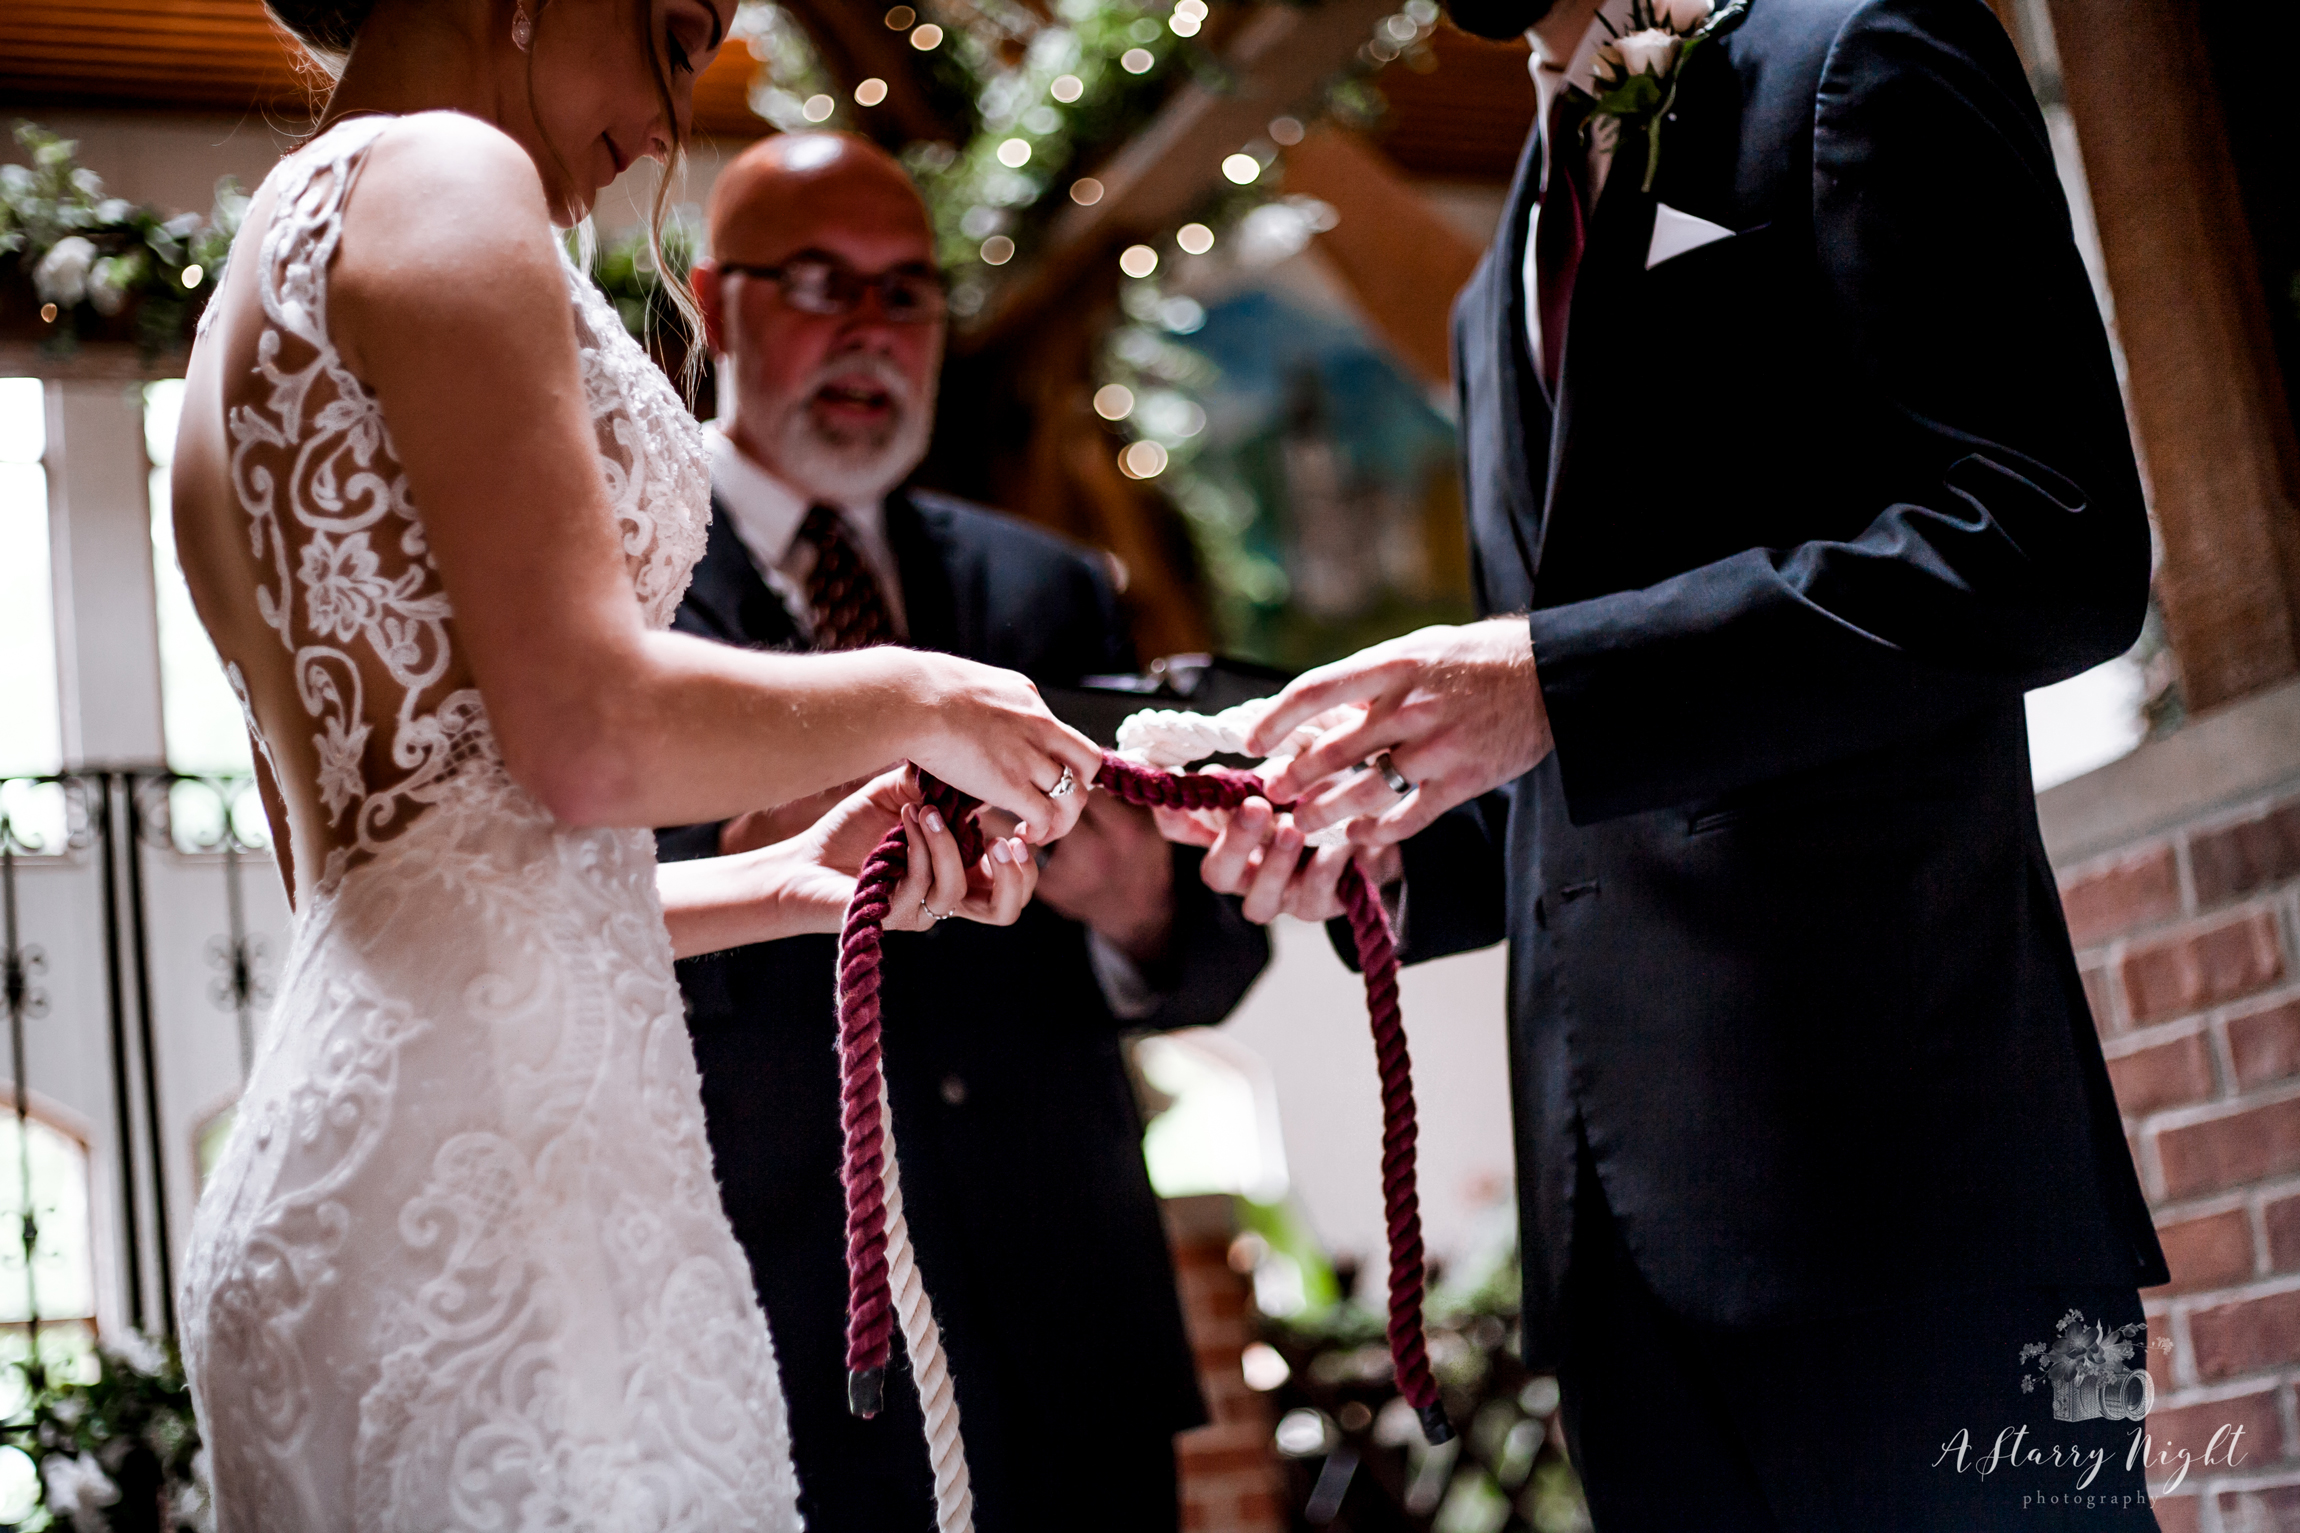 knot-tying-ceremony-frankenmuth-wedding.jpg